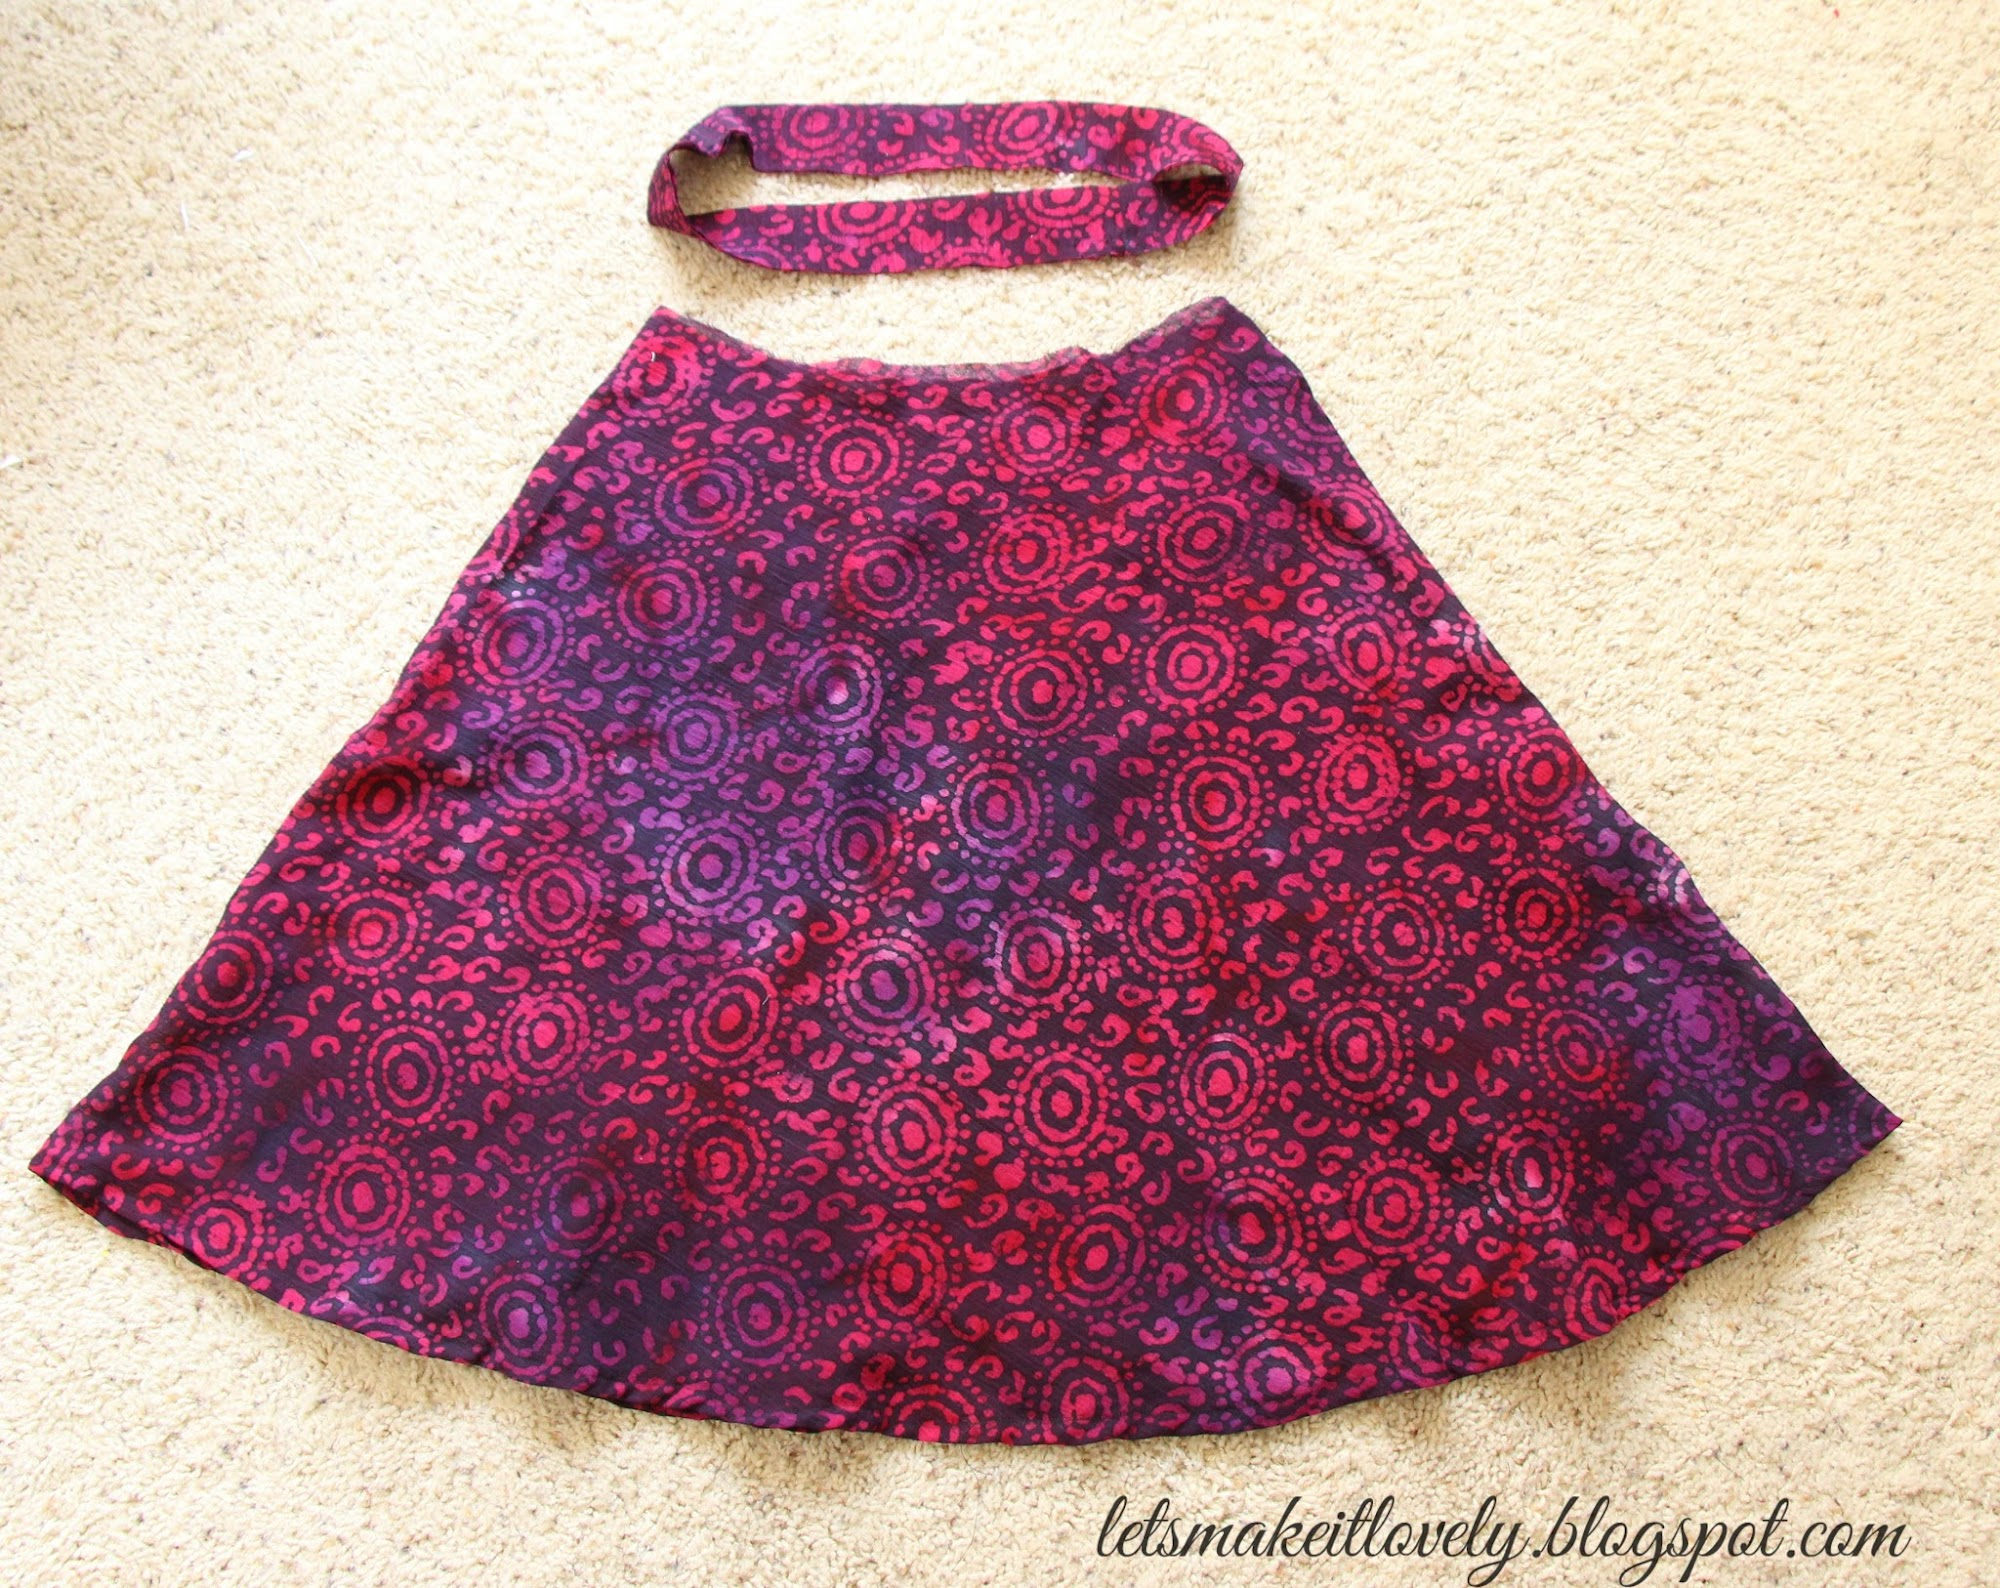 Sew a simple summer skirt. Half circle skirt for beginners. Sewing projects for beginners.